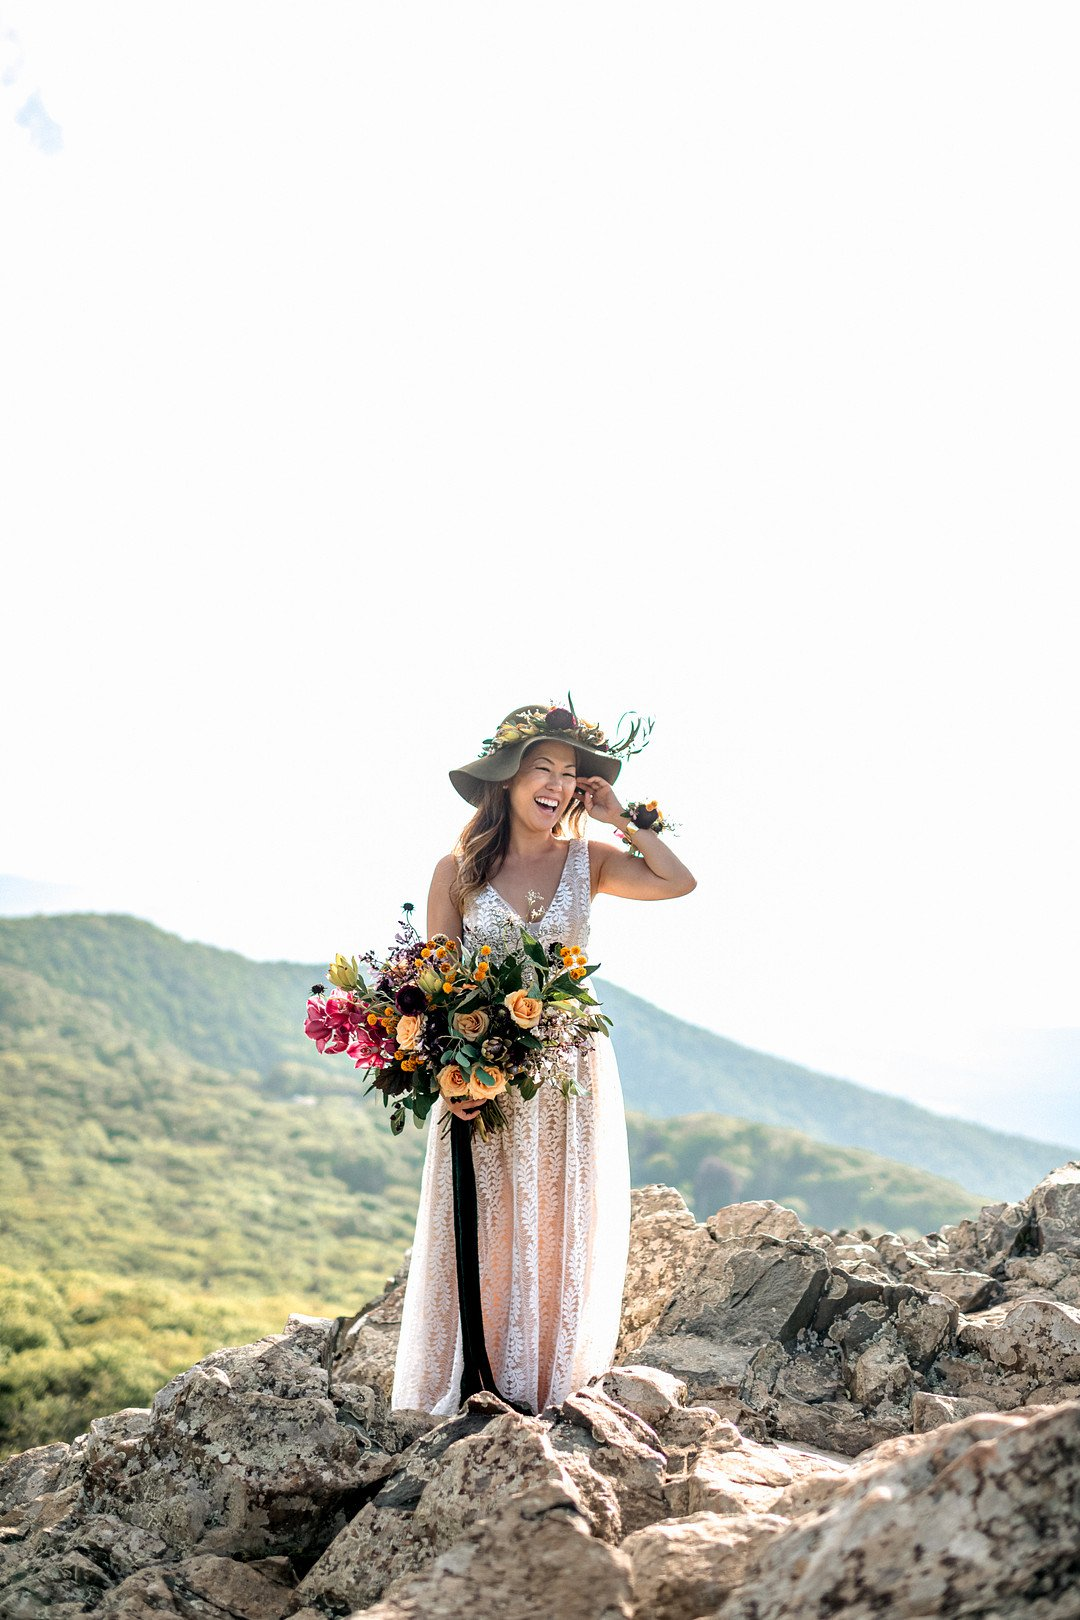 Boho Mountain Elopement in Shenandoah National Park_1001 Angles Photography_Shenandoah National Park Adventure Elopement-74_low